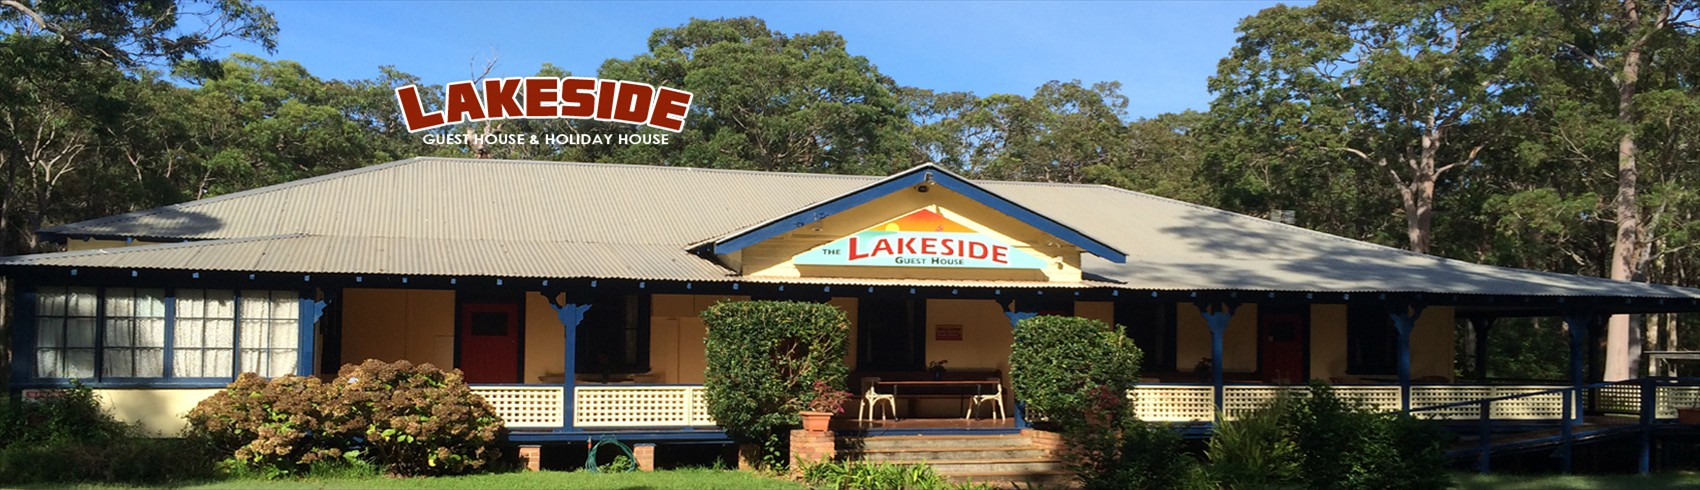 The Lakeside Guesthouse Lake Macquarie